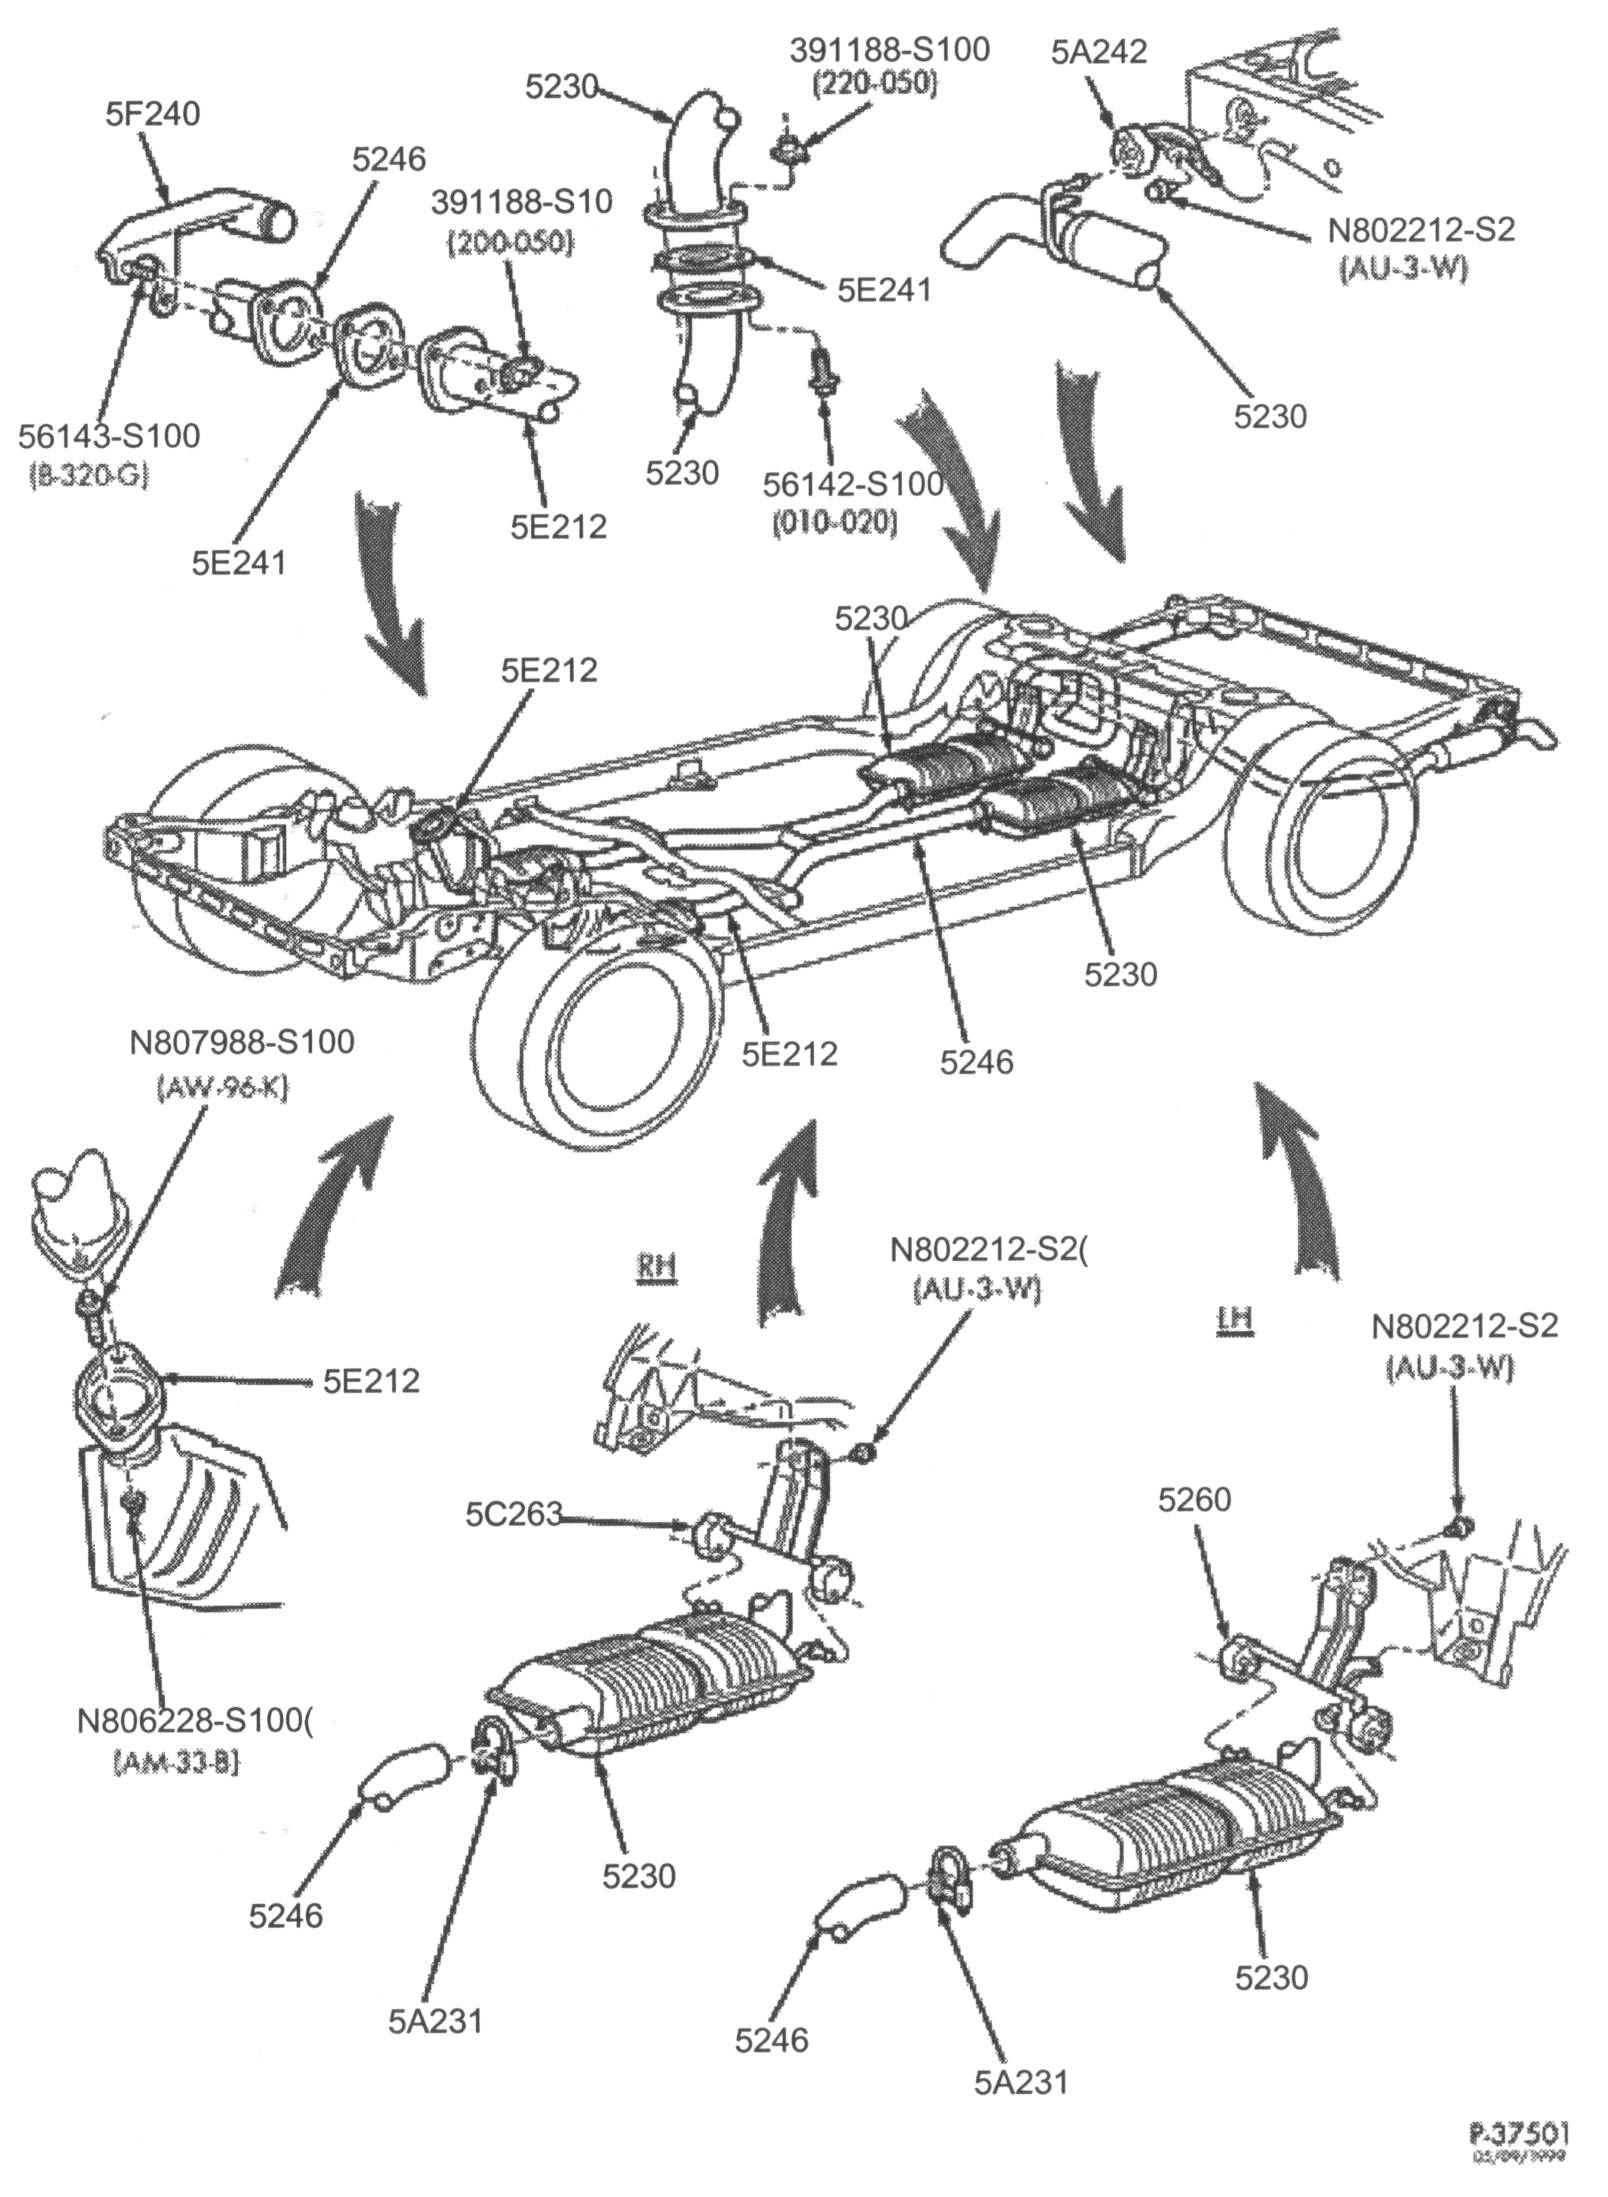 hight resolution of 1992 ford crown victoria 4 6 engine diagram wiring diagram libraries 1992 ford crown victoria 4 6 engine diagram